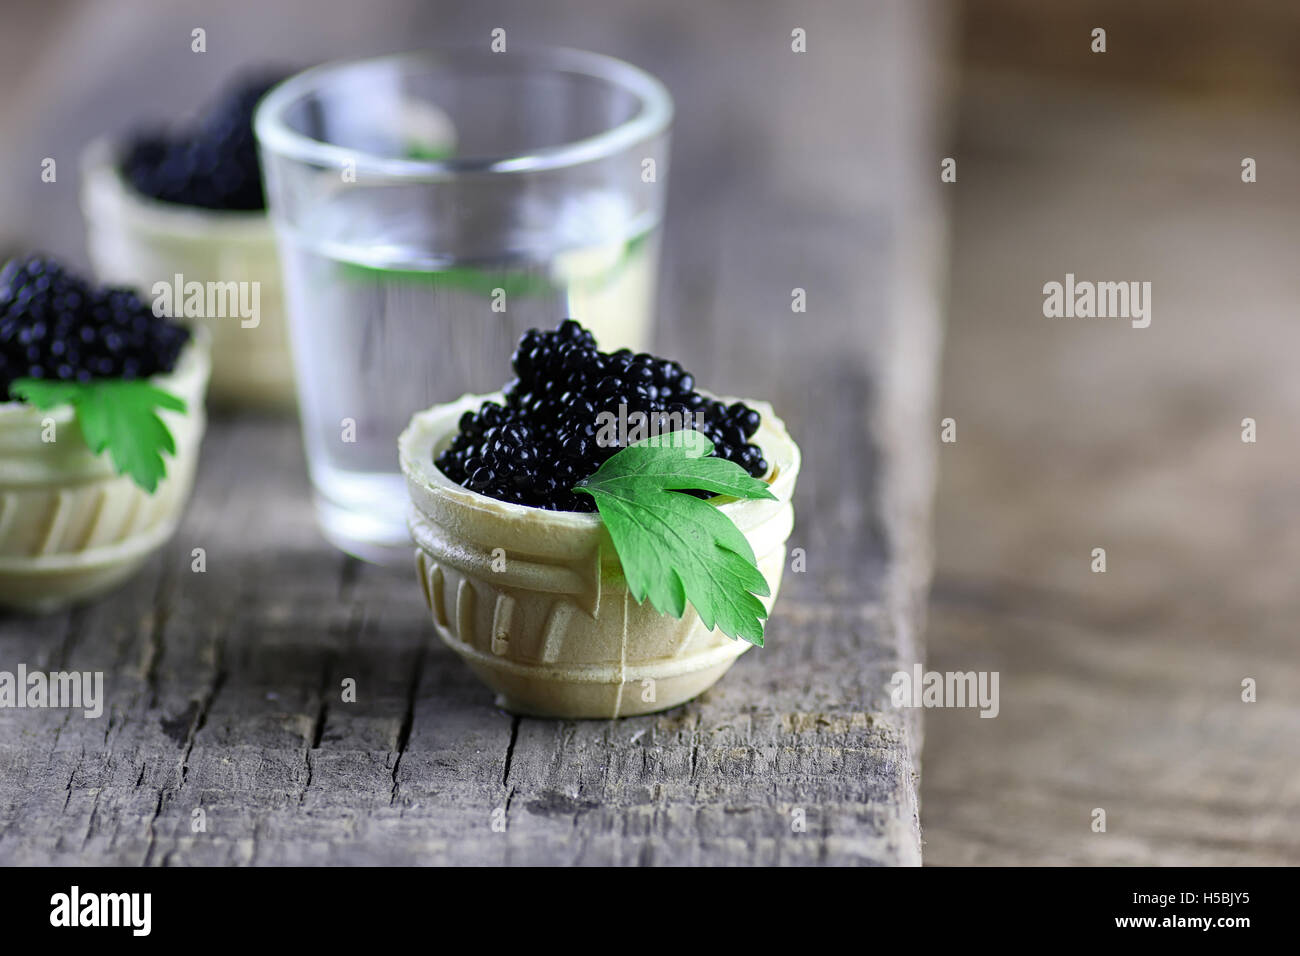 black caviar on a wooden background - Stock Image